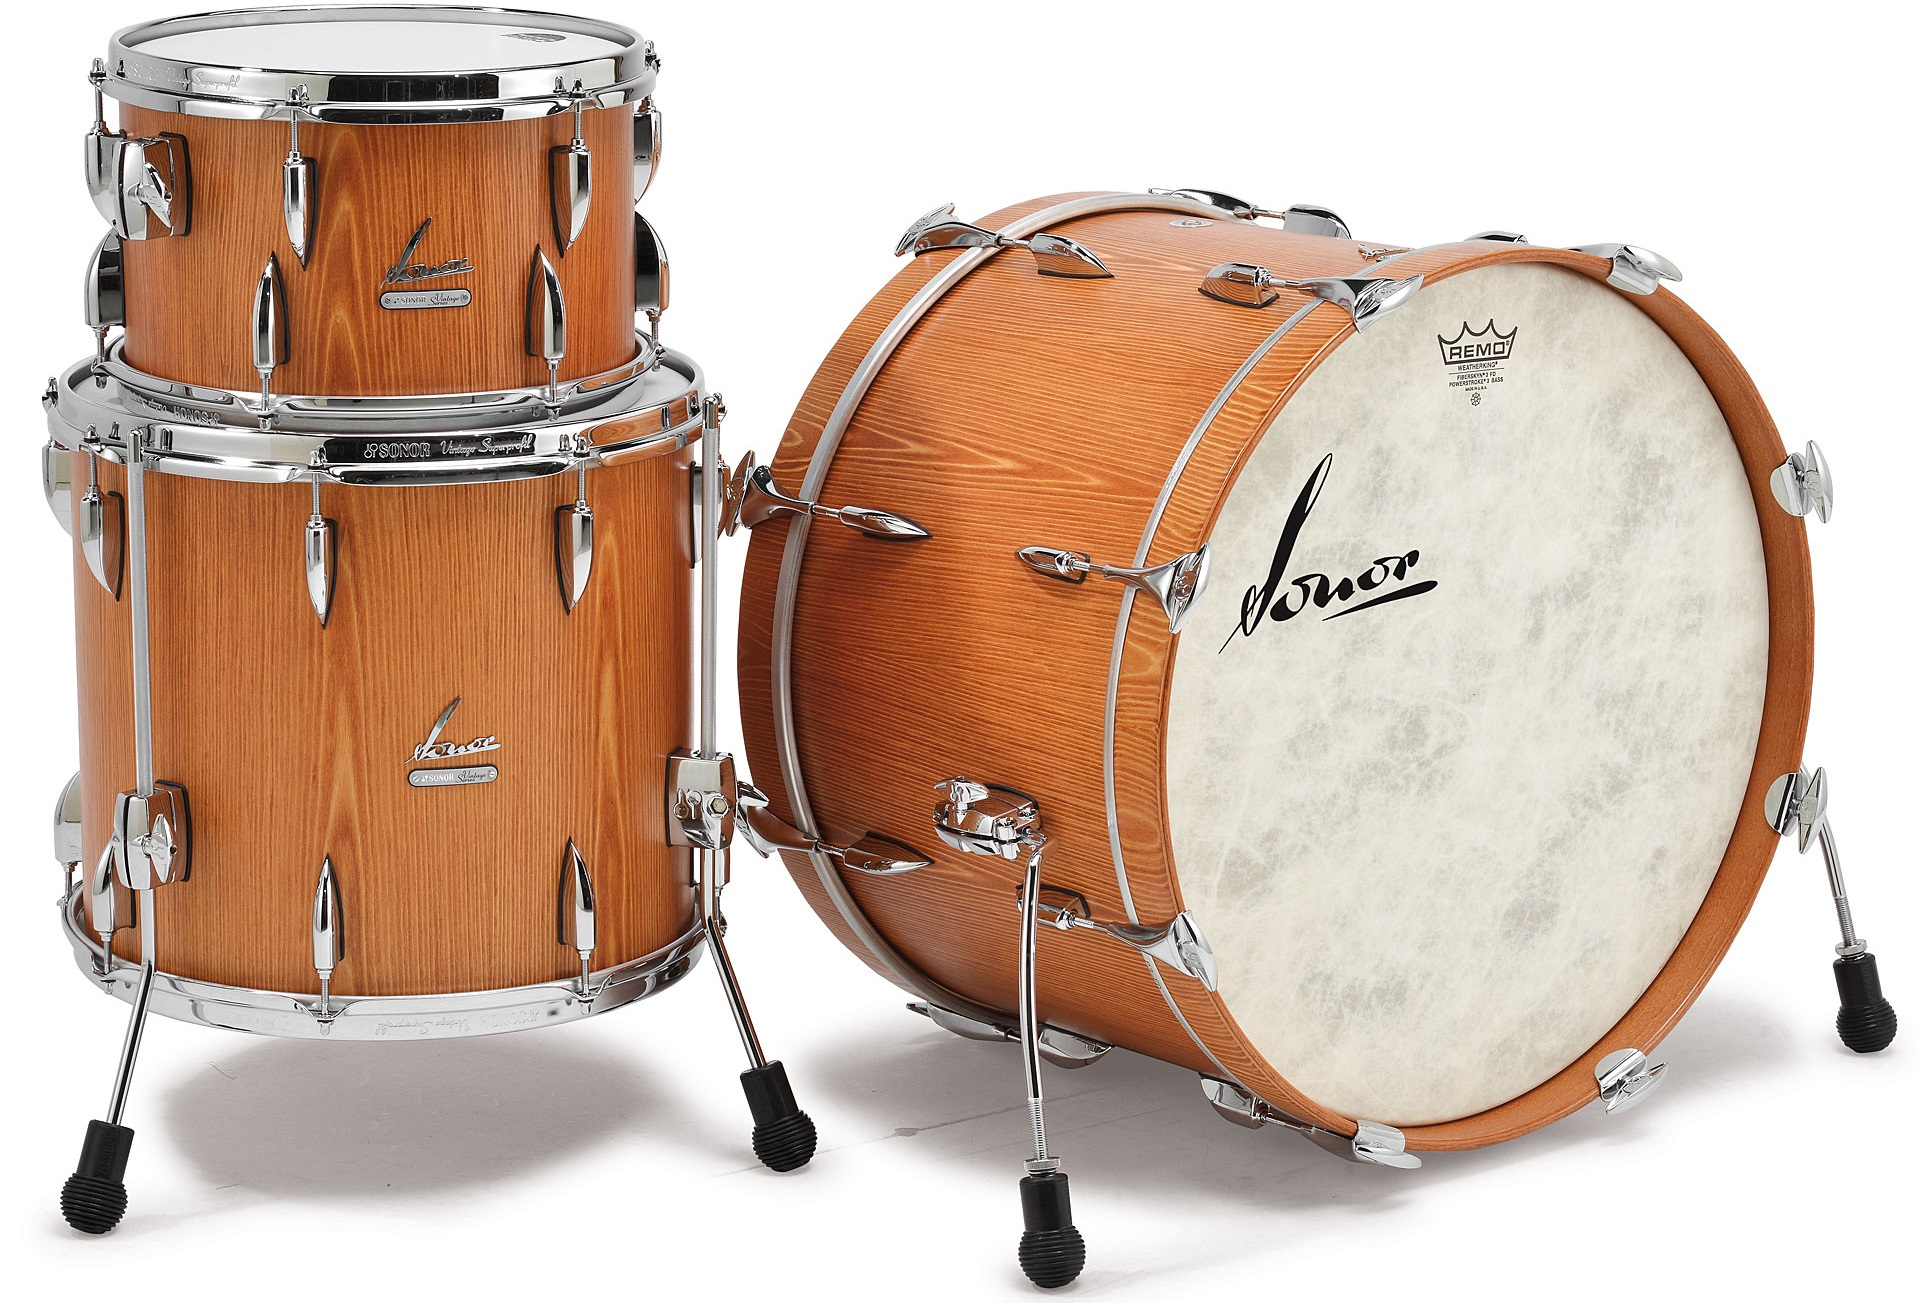 Sonor Vintage series set 2 Vintage natural